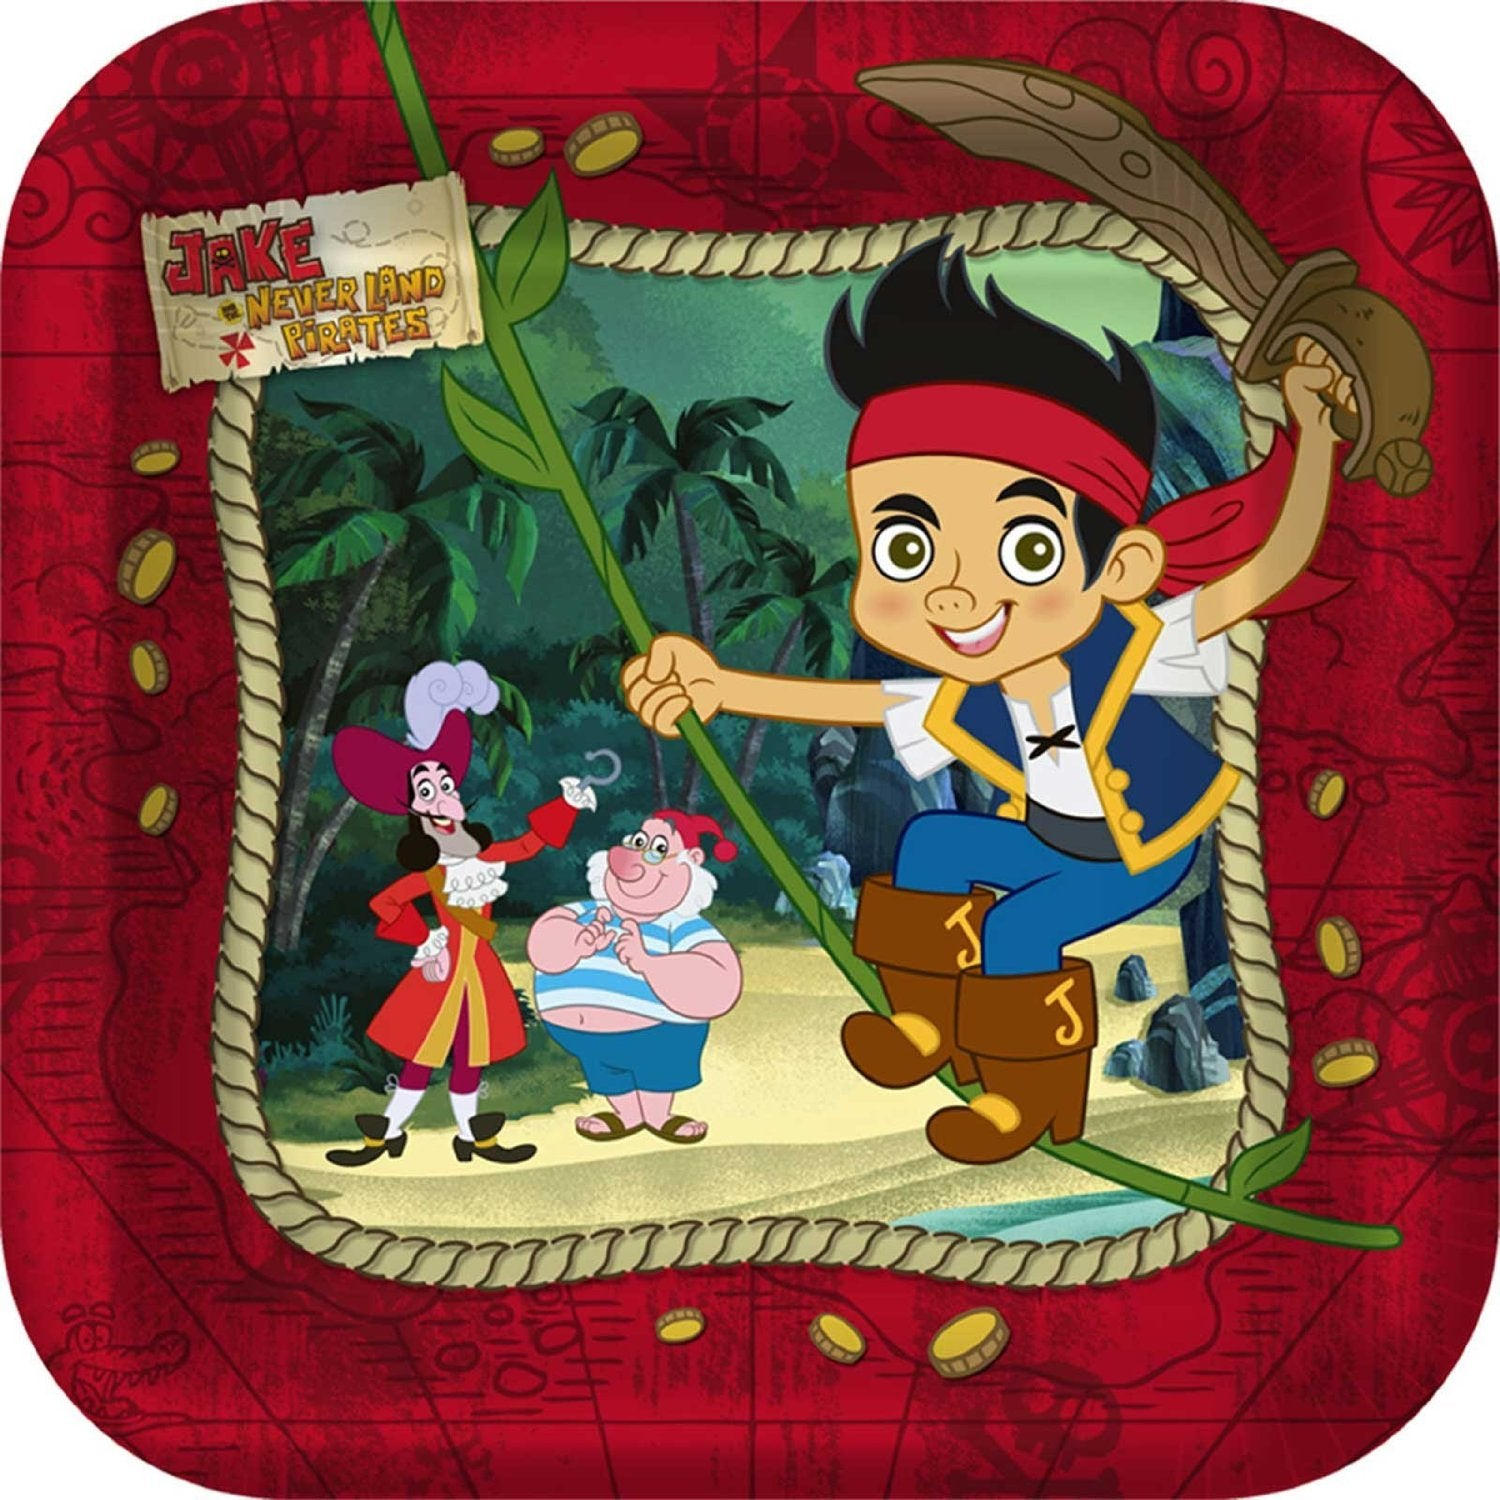 Jake and the Never Land Pirates Party Supplies - Dessert Plate